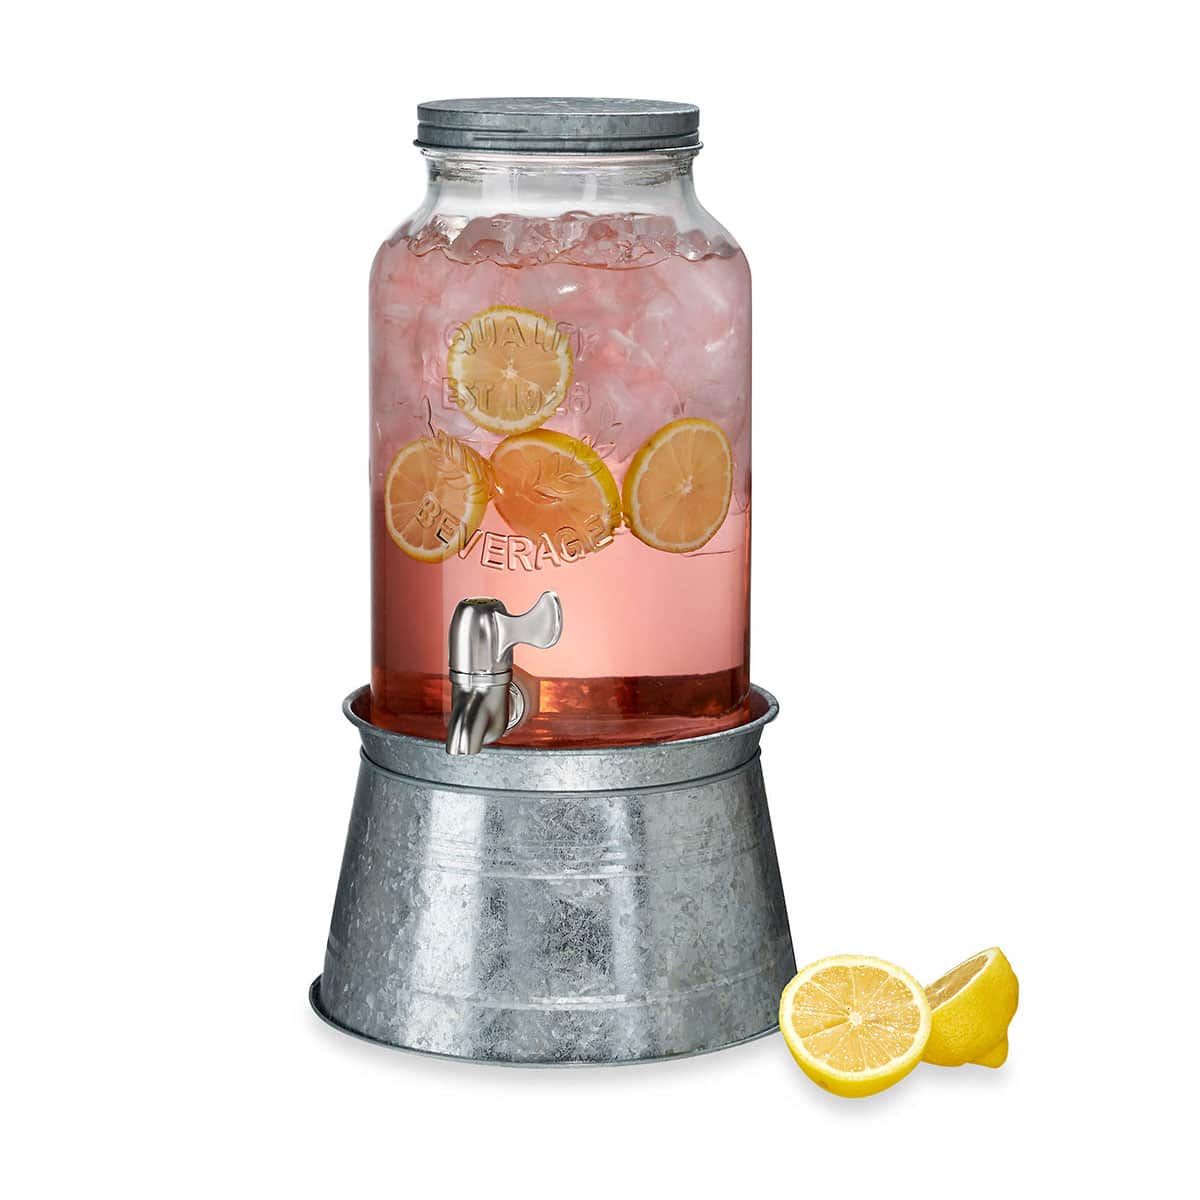 10 Beverage Dispensers to Gift to Your Favorite Party Host: gallery image 8